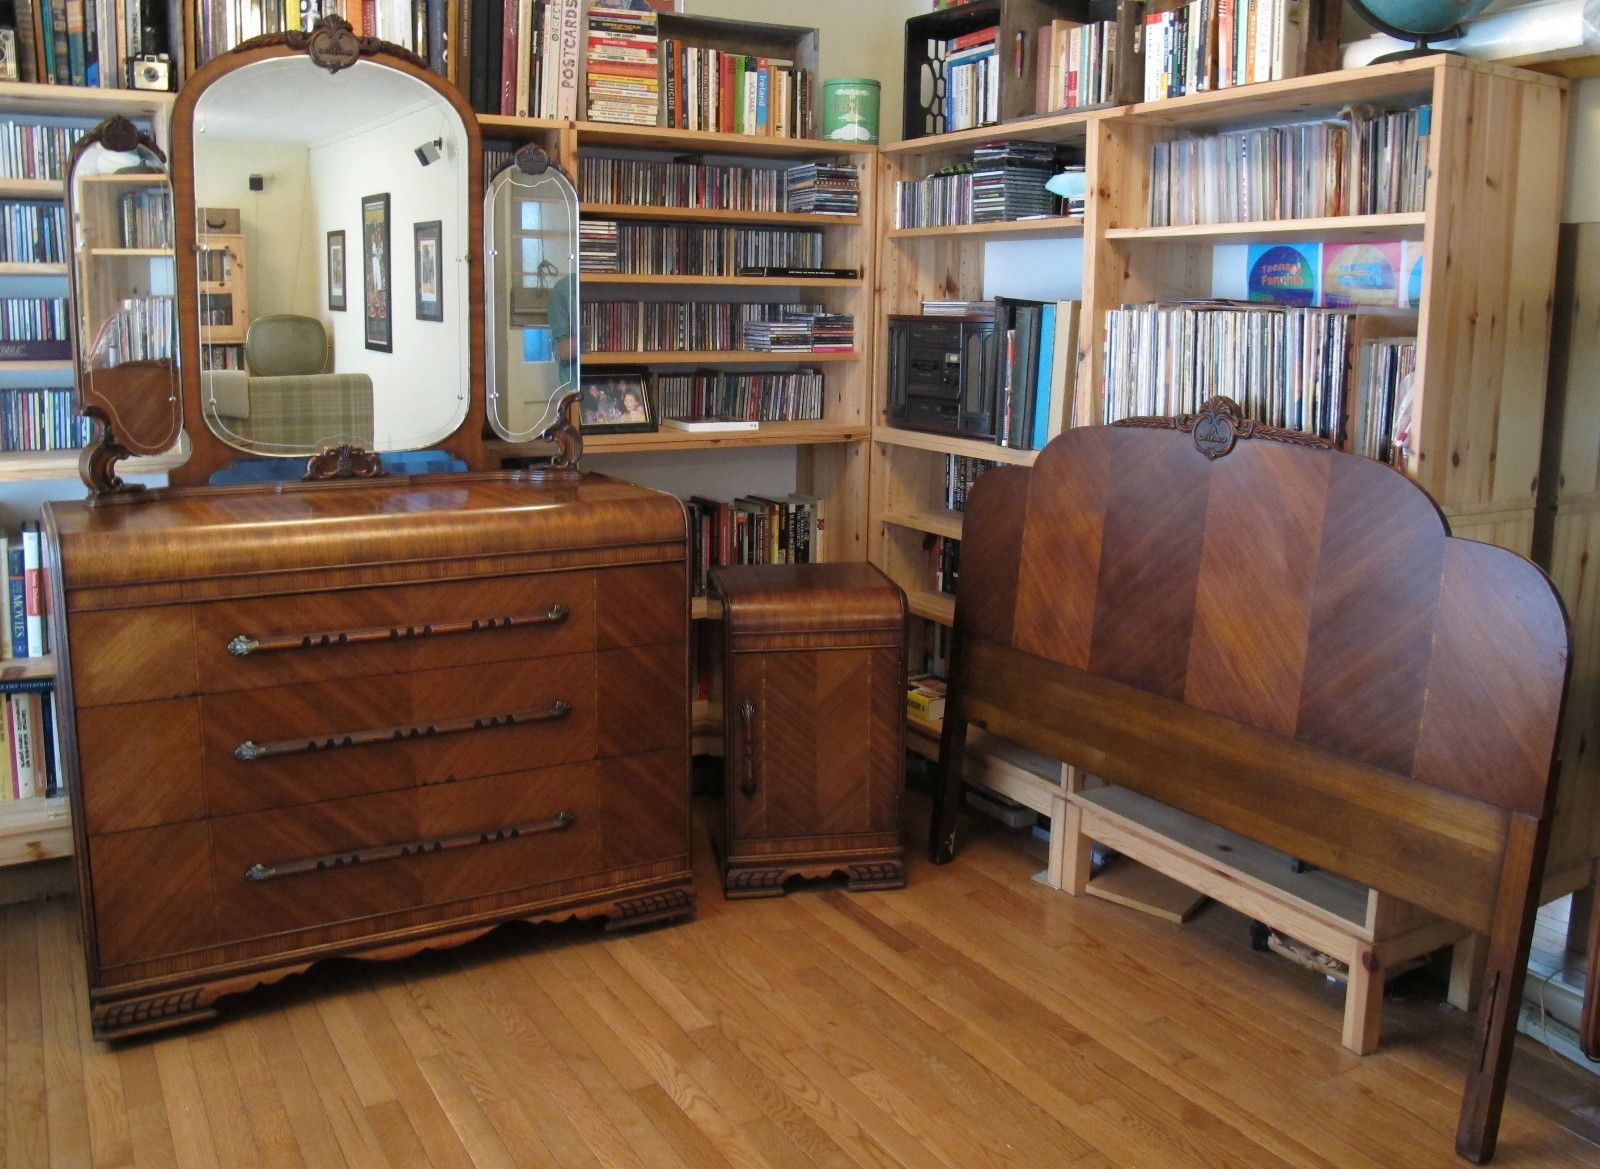 350 Start 3 Piece Art Deco Bedroom Set Dresser W Mirror Nightstand Headboard 1930s Full Ebay